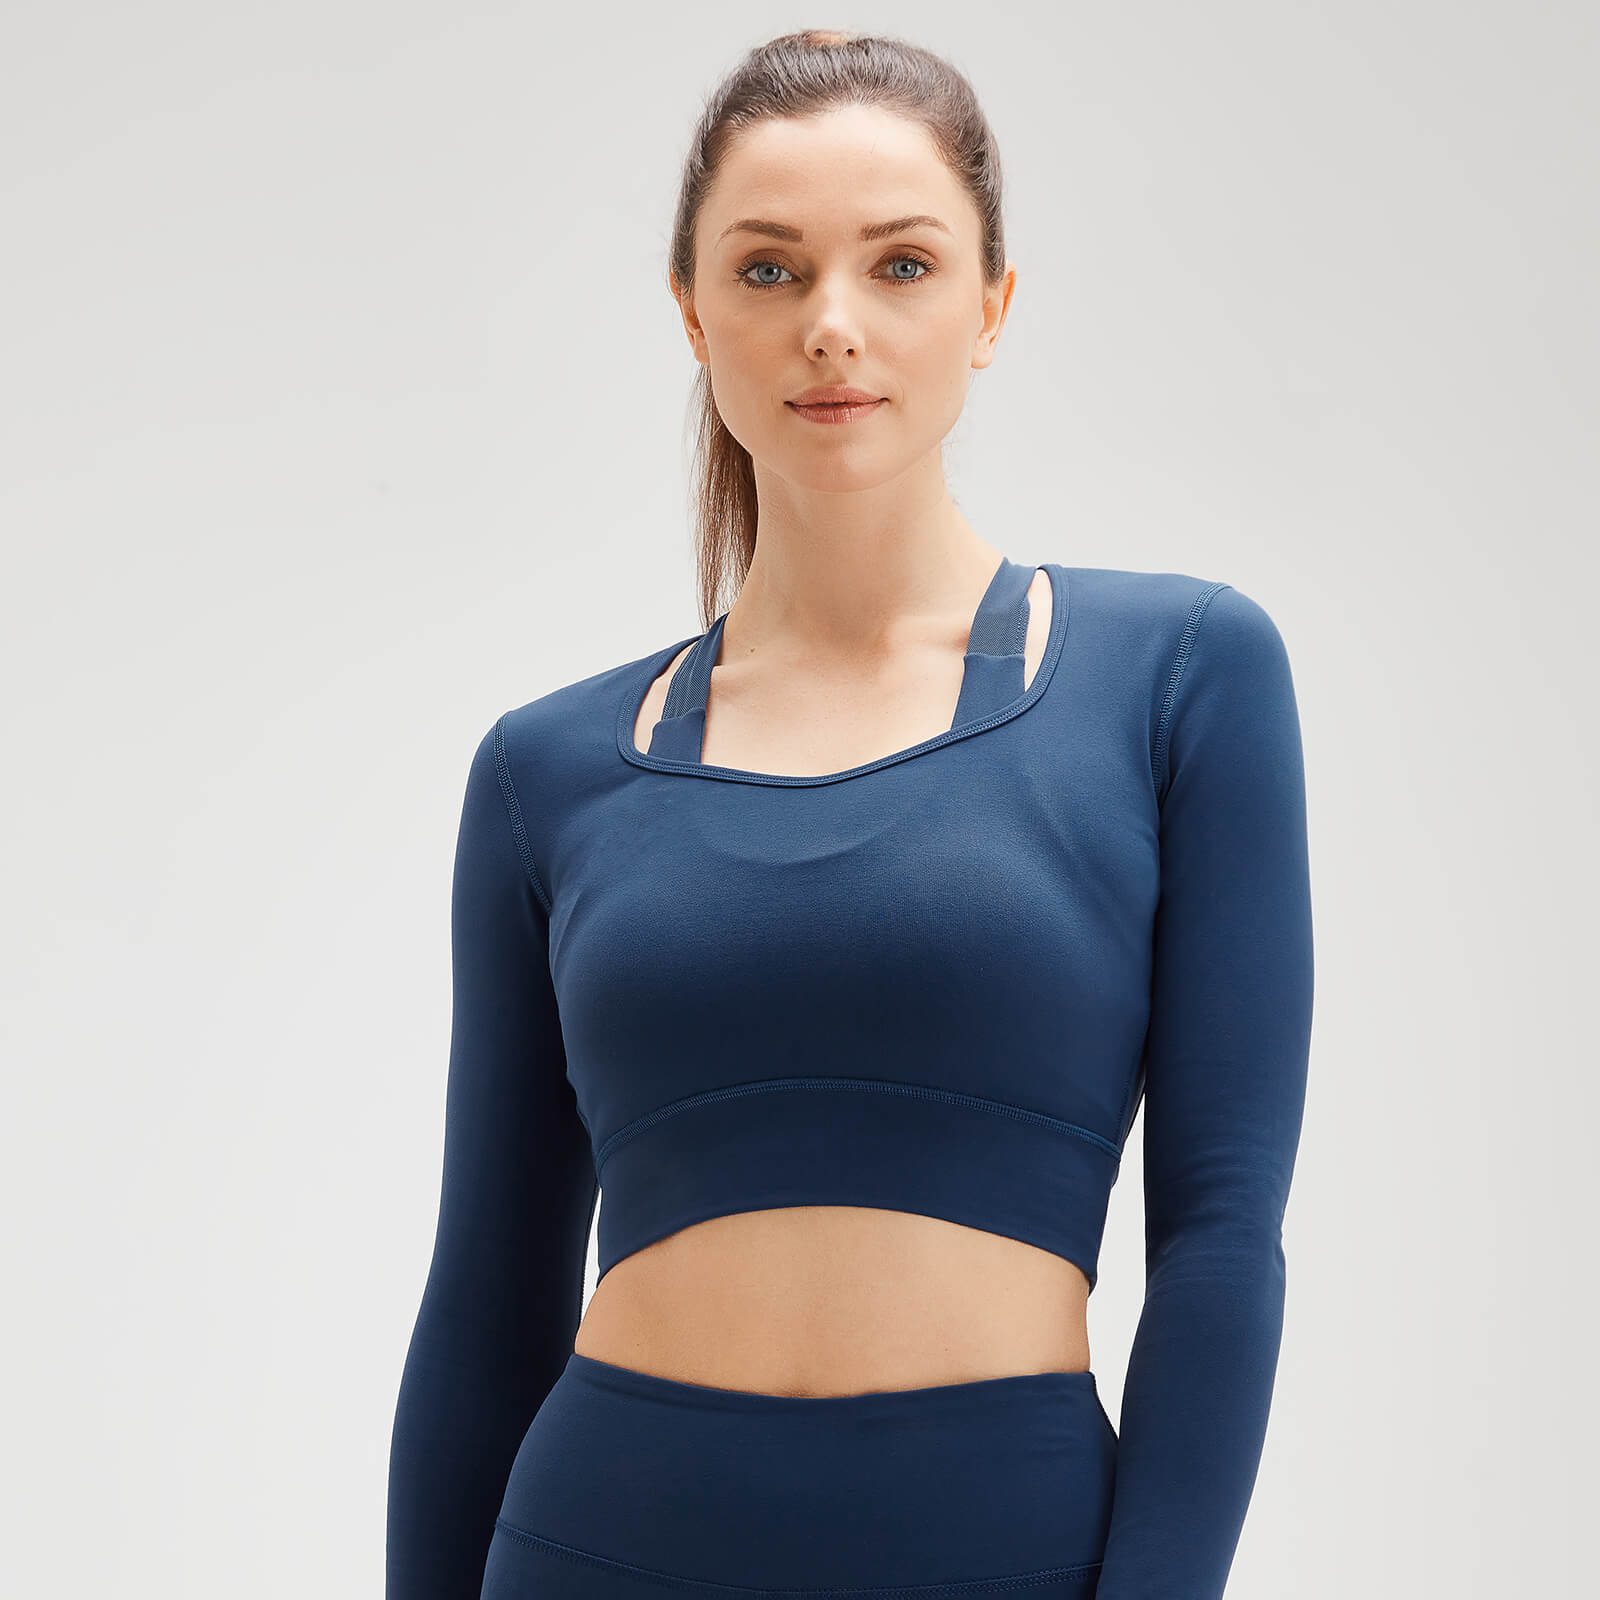 MP Women's Power Open Back Crop Top - Dark Blue - S